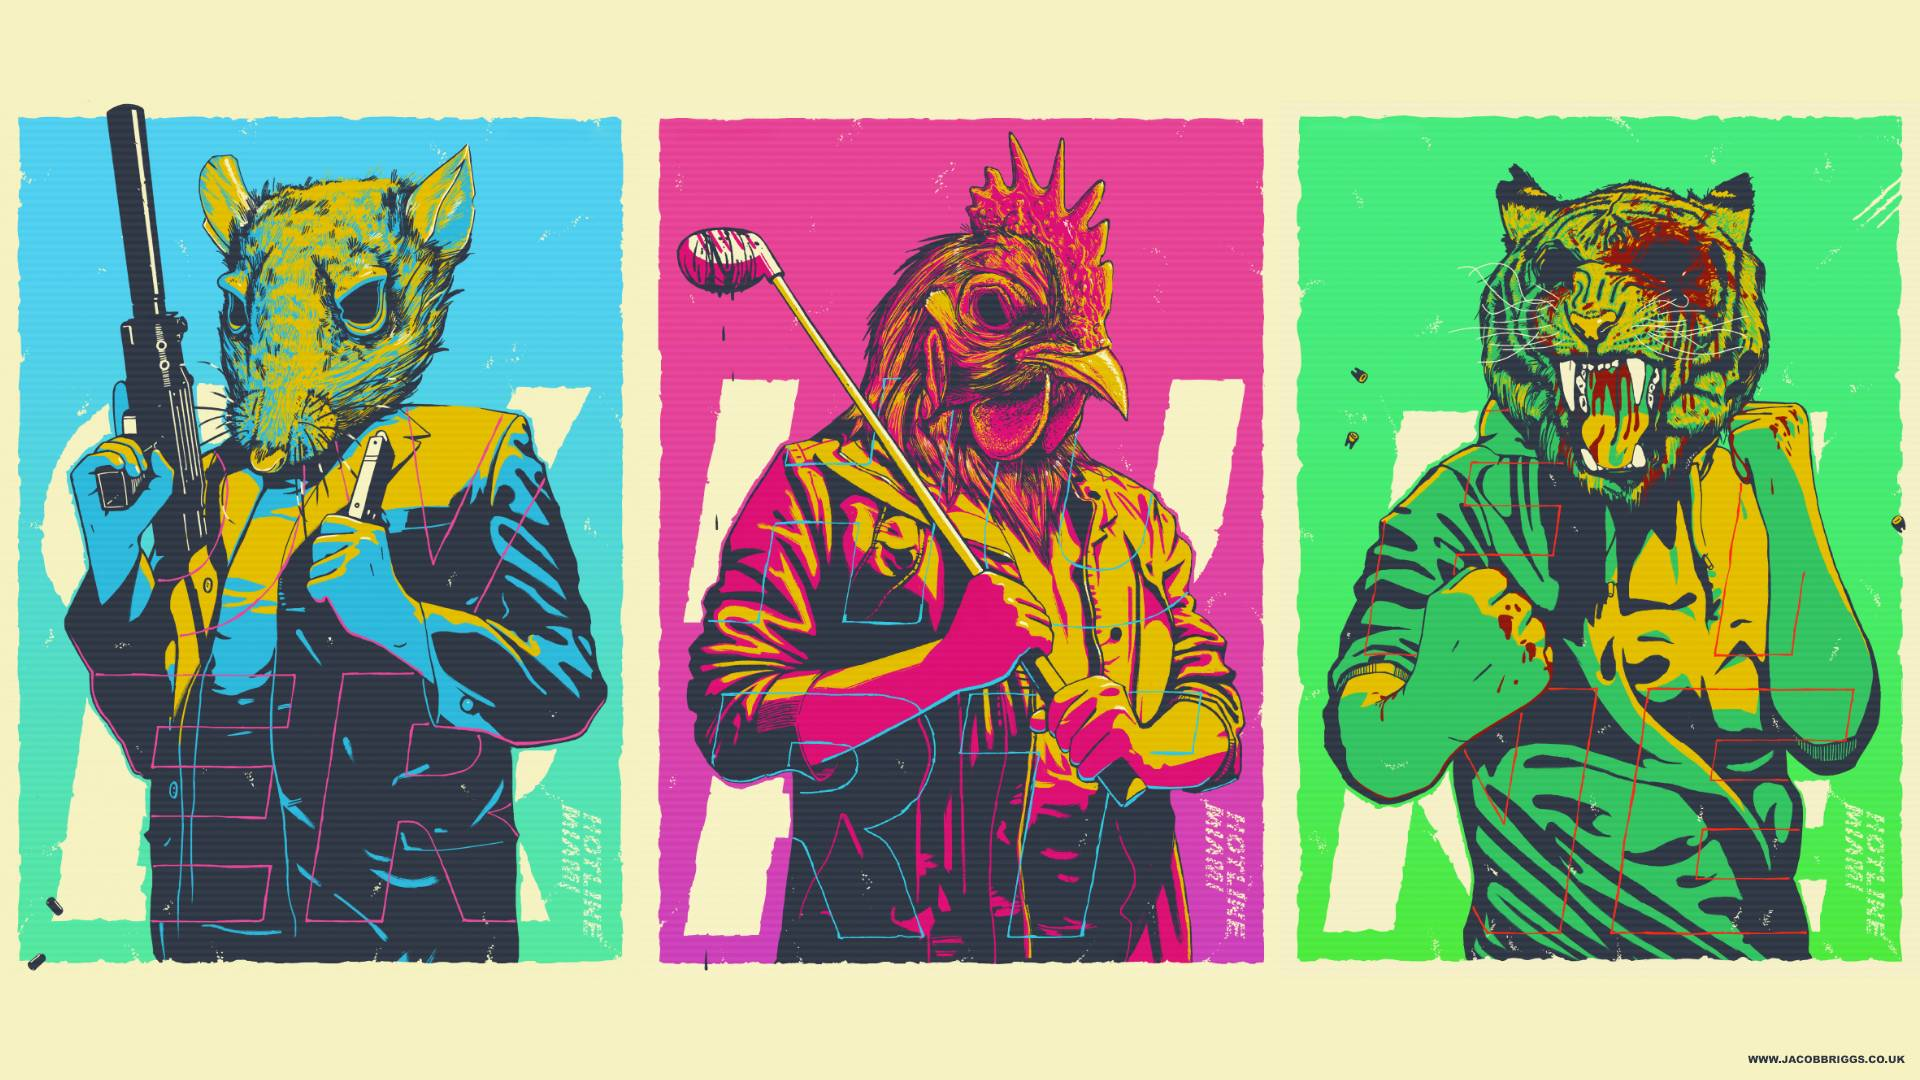 Cool Iphone Wallpaper Ideas Hotline Miami Wallpapers Pictures Images